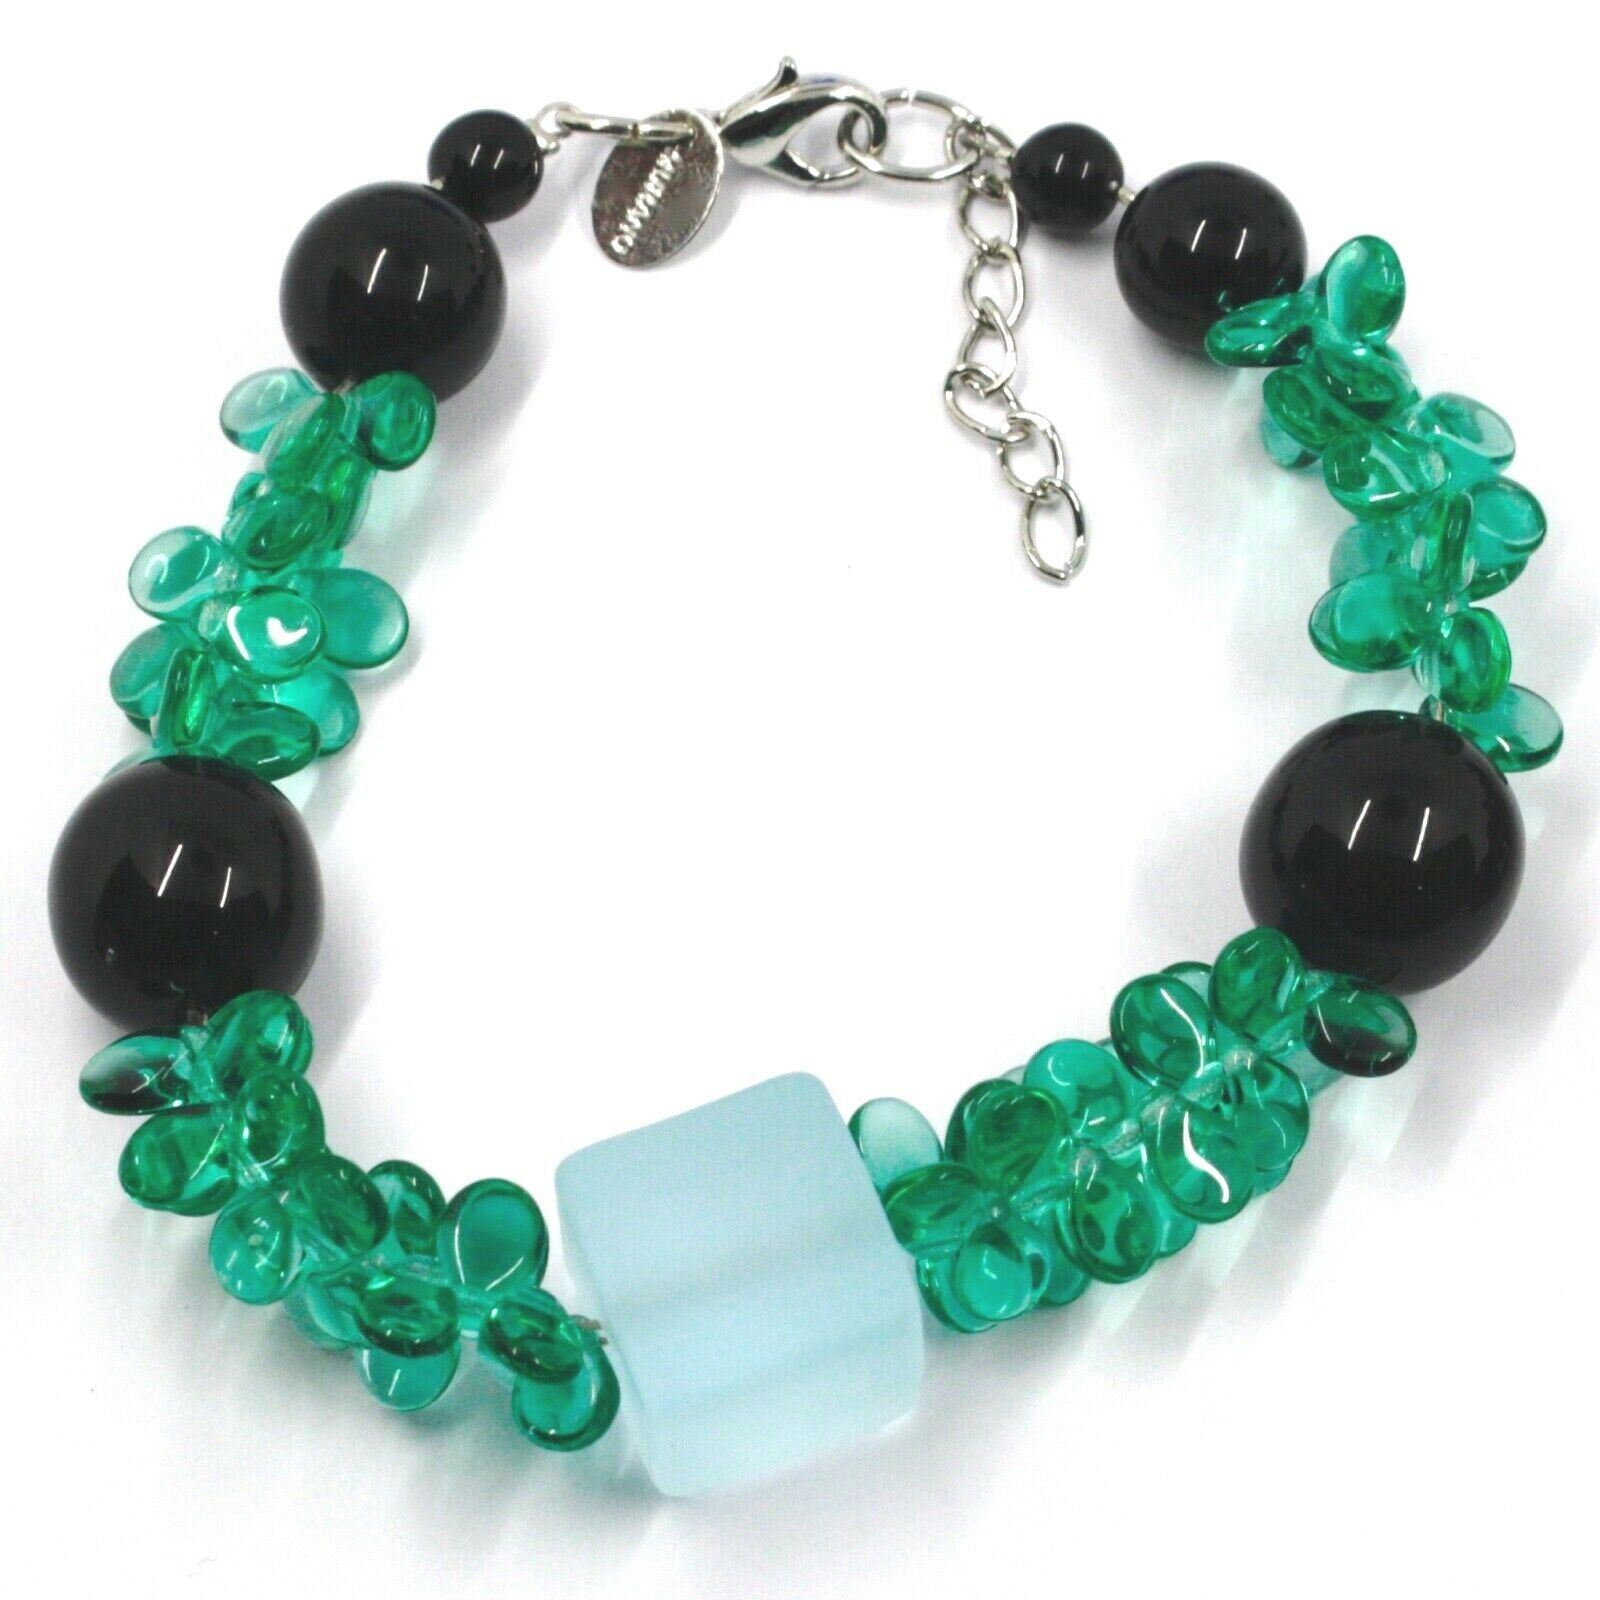 BRACELET GREEN BLACK MURANO GLASS BUNCH OF PETAL DROPS CUBE BALL, MADE IN ITALY